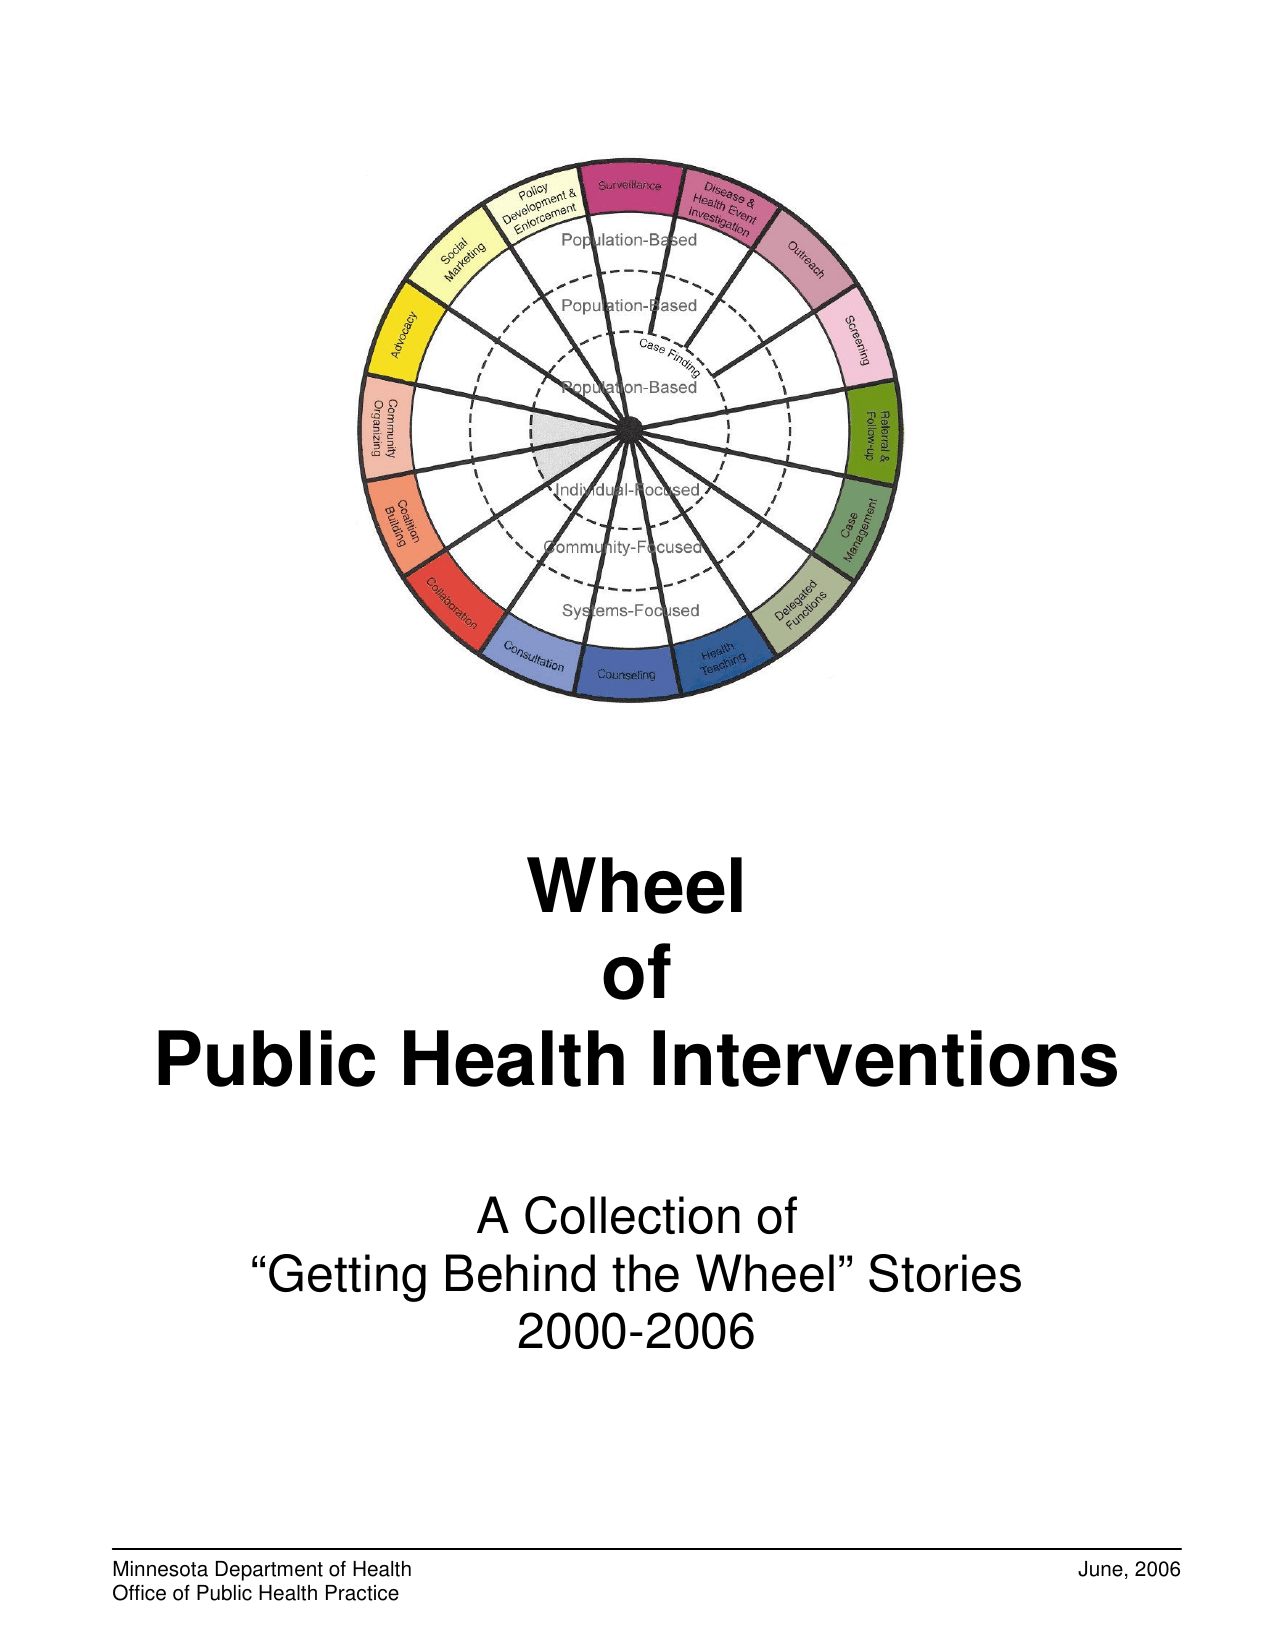 Wheel of Public Health Interventions: A Collection of